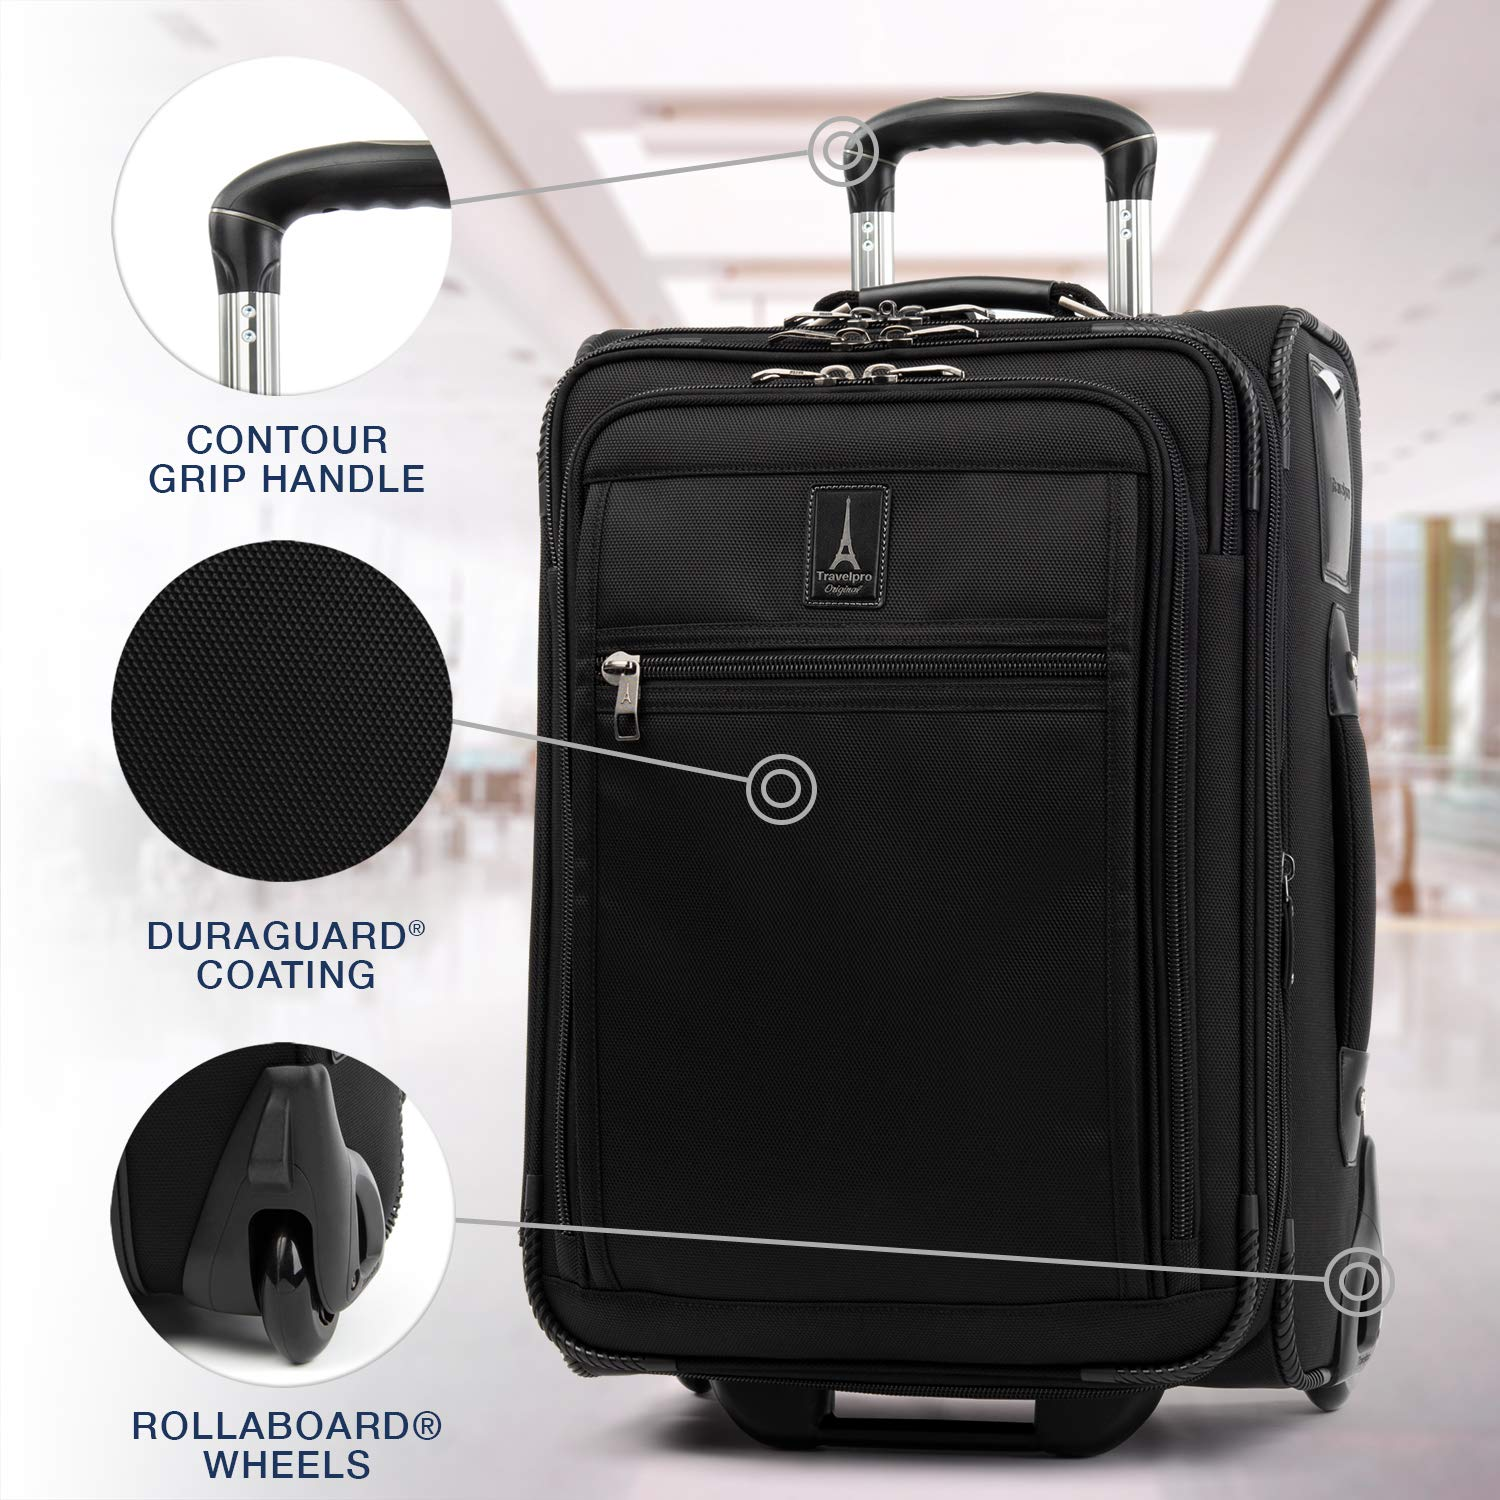 Travelpro Crew Expert Carry On Rollaboard